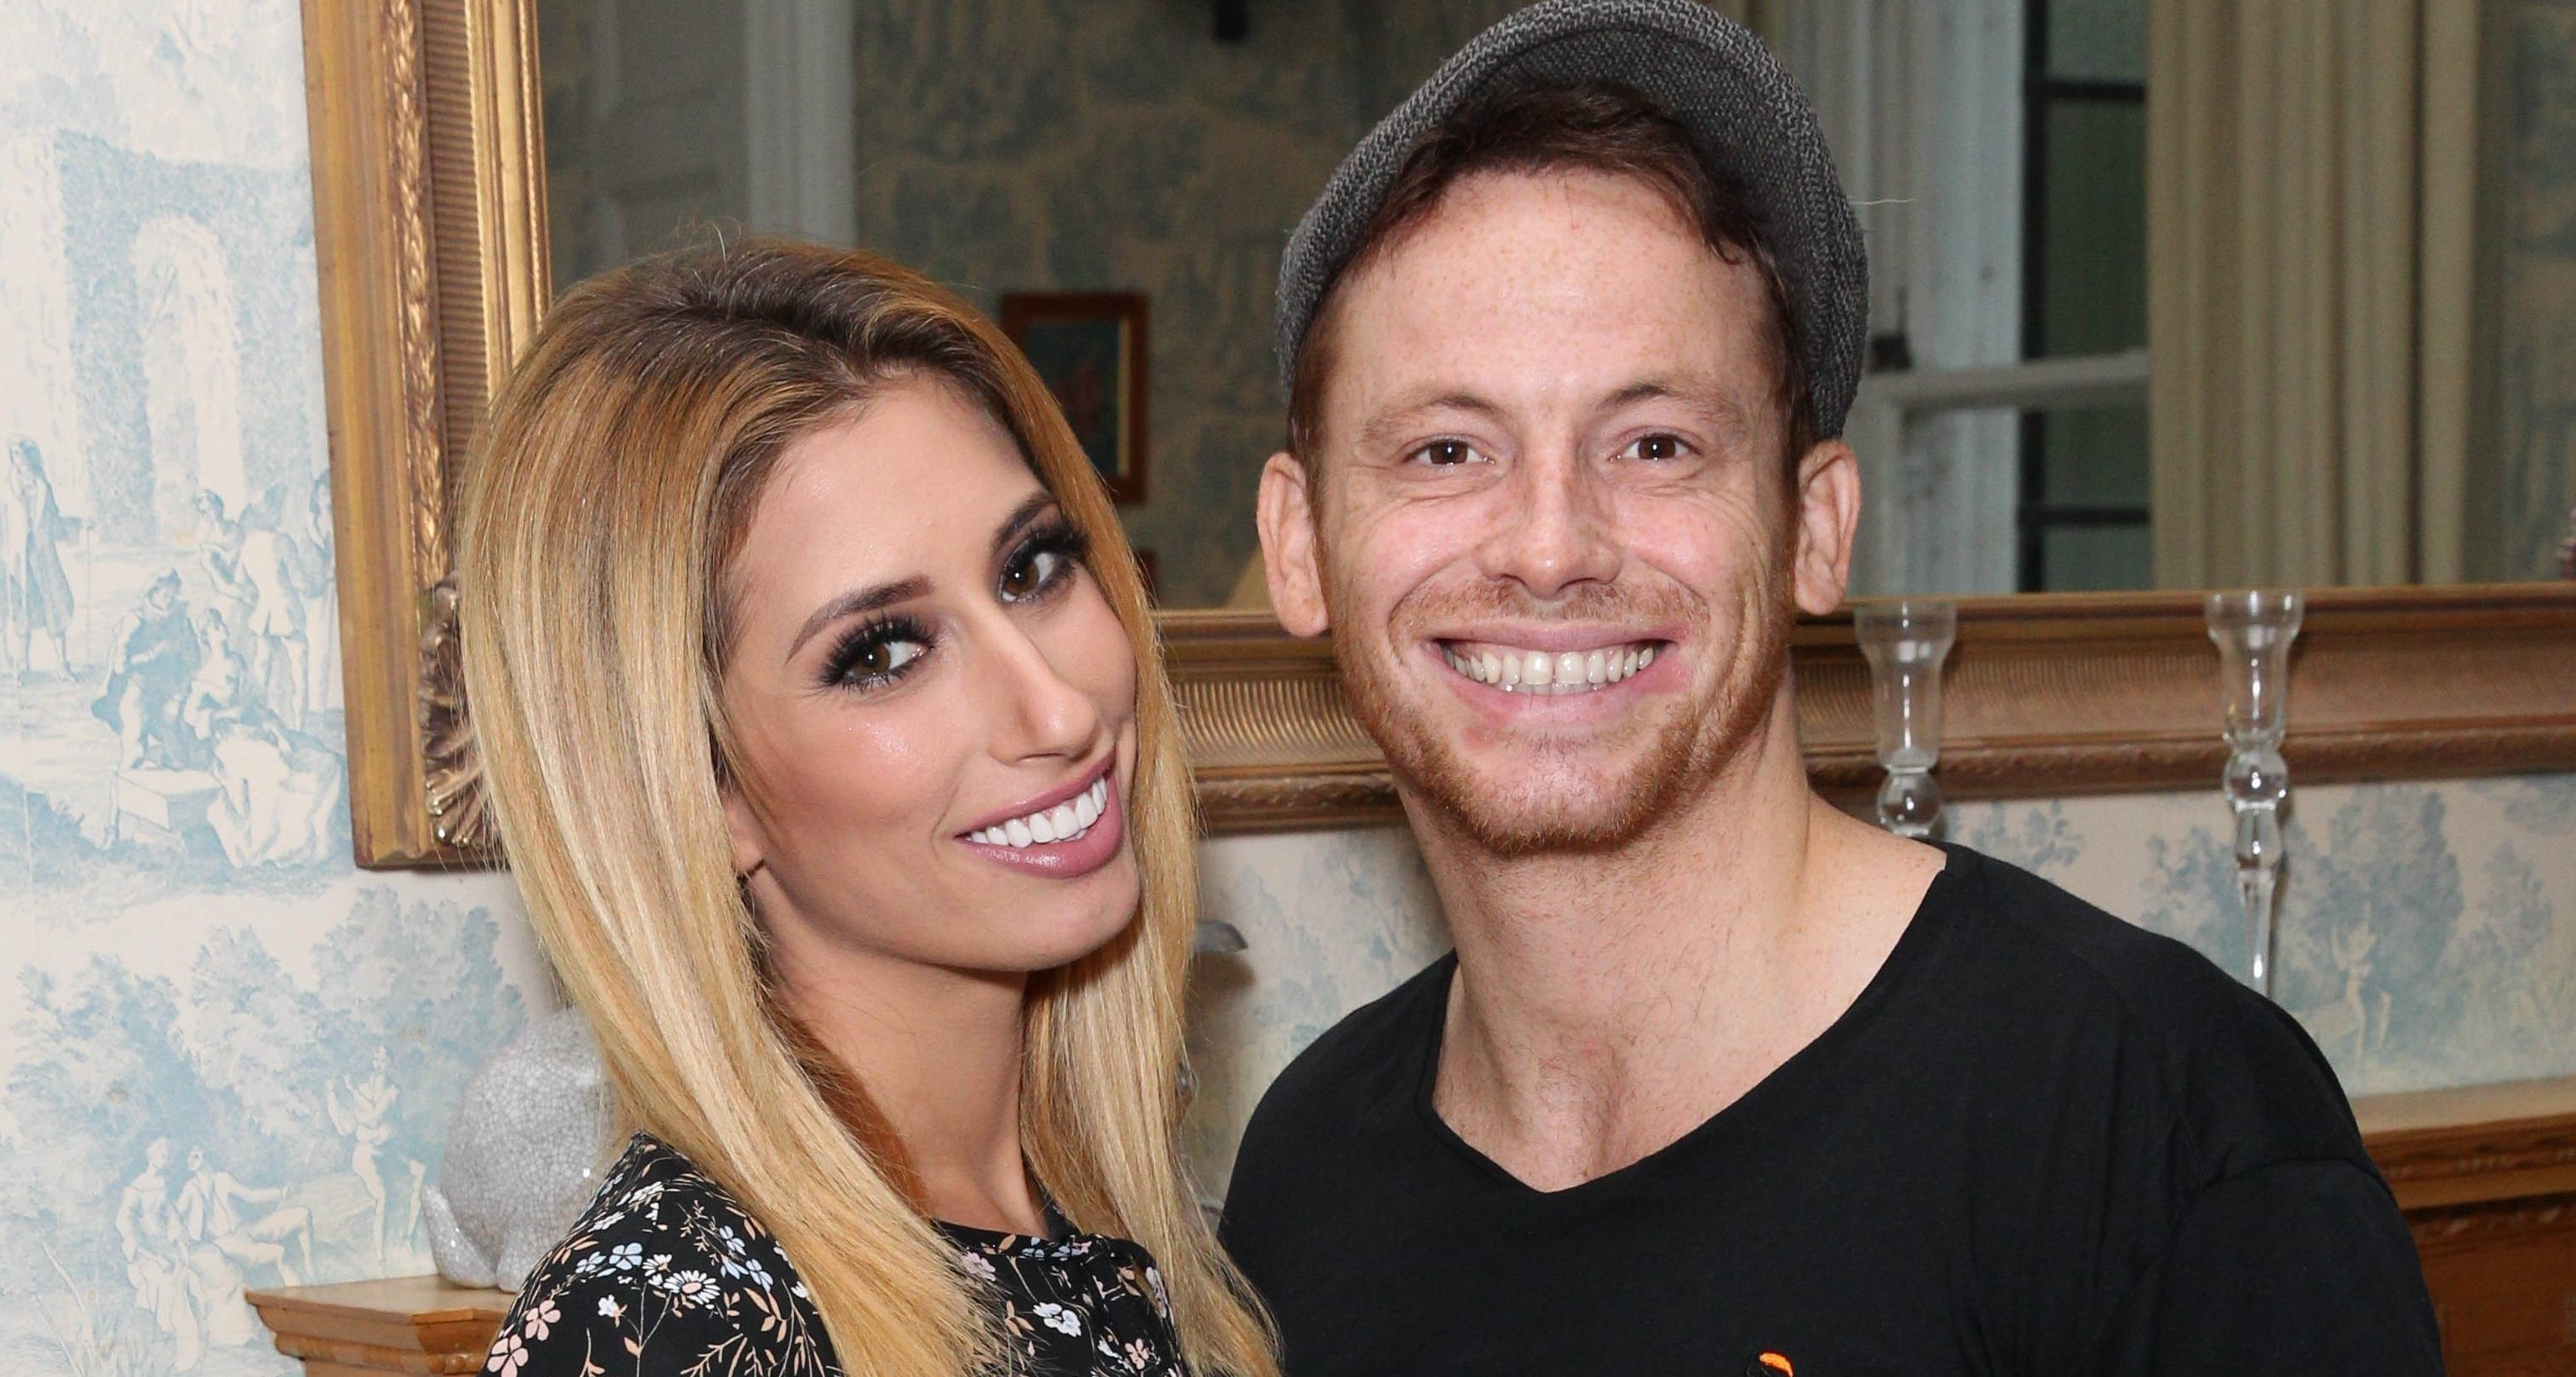 Joe Swash reveals why he DIDN'T reply to Stacey Solomon's love letter